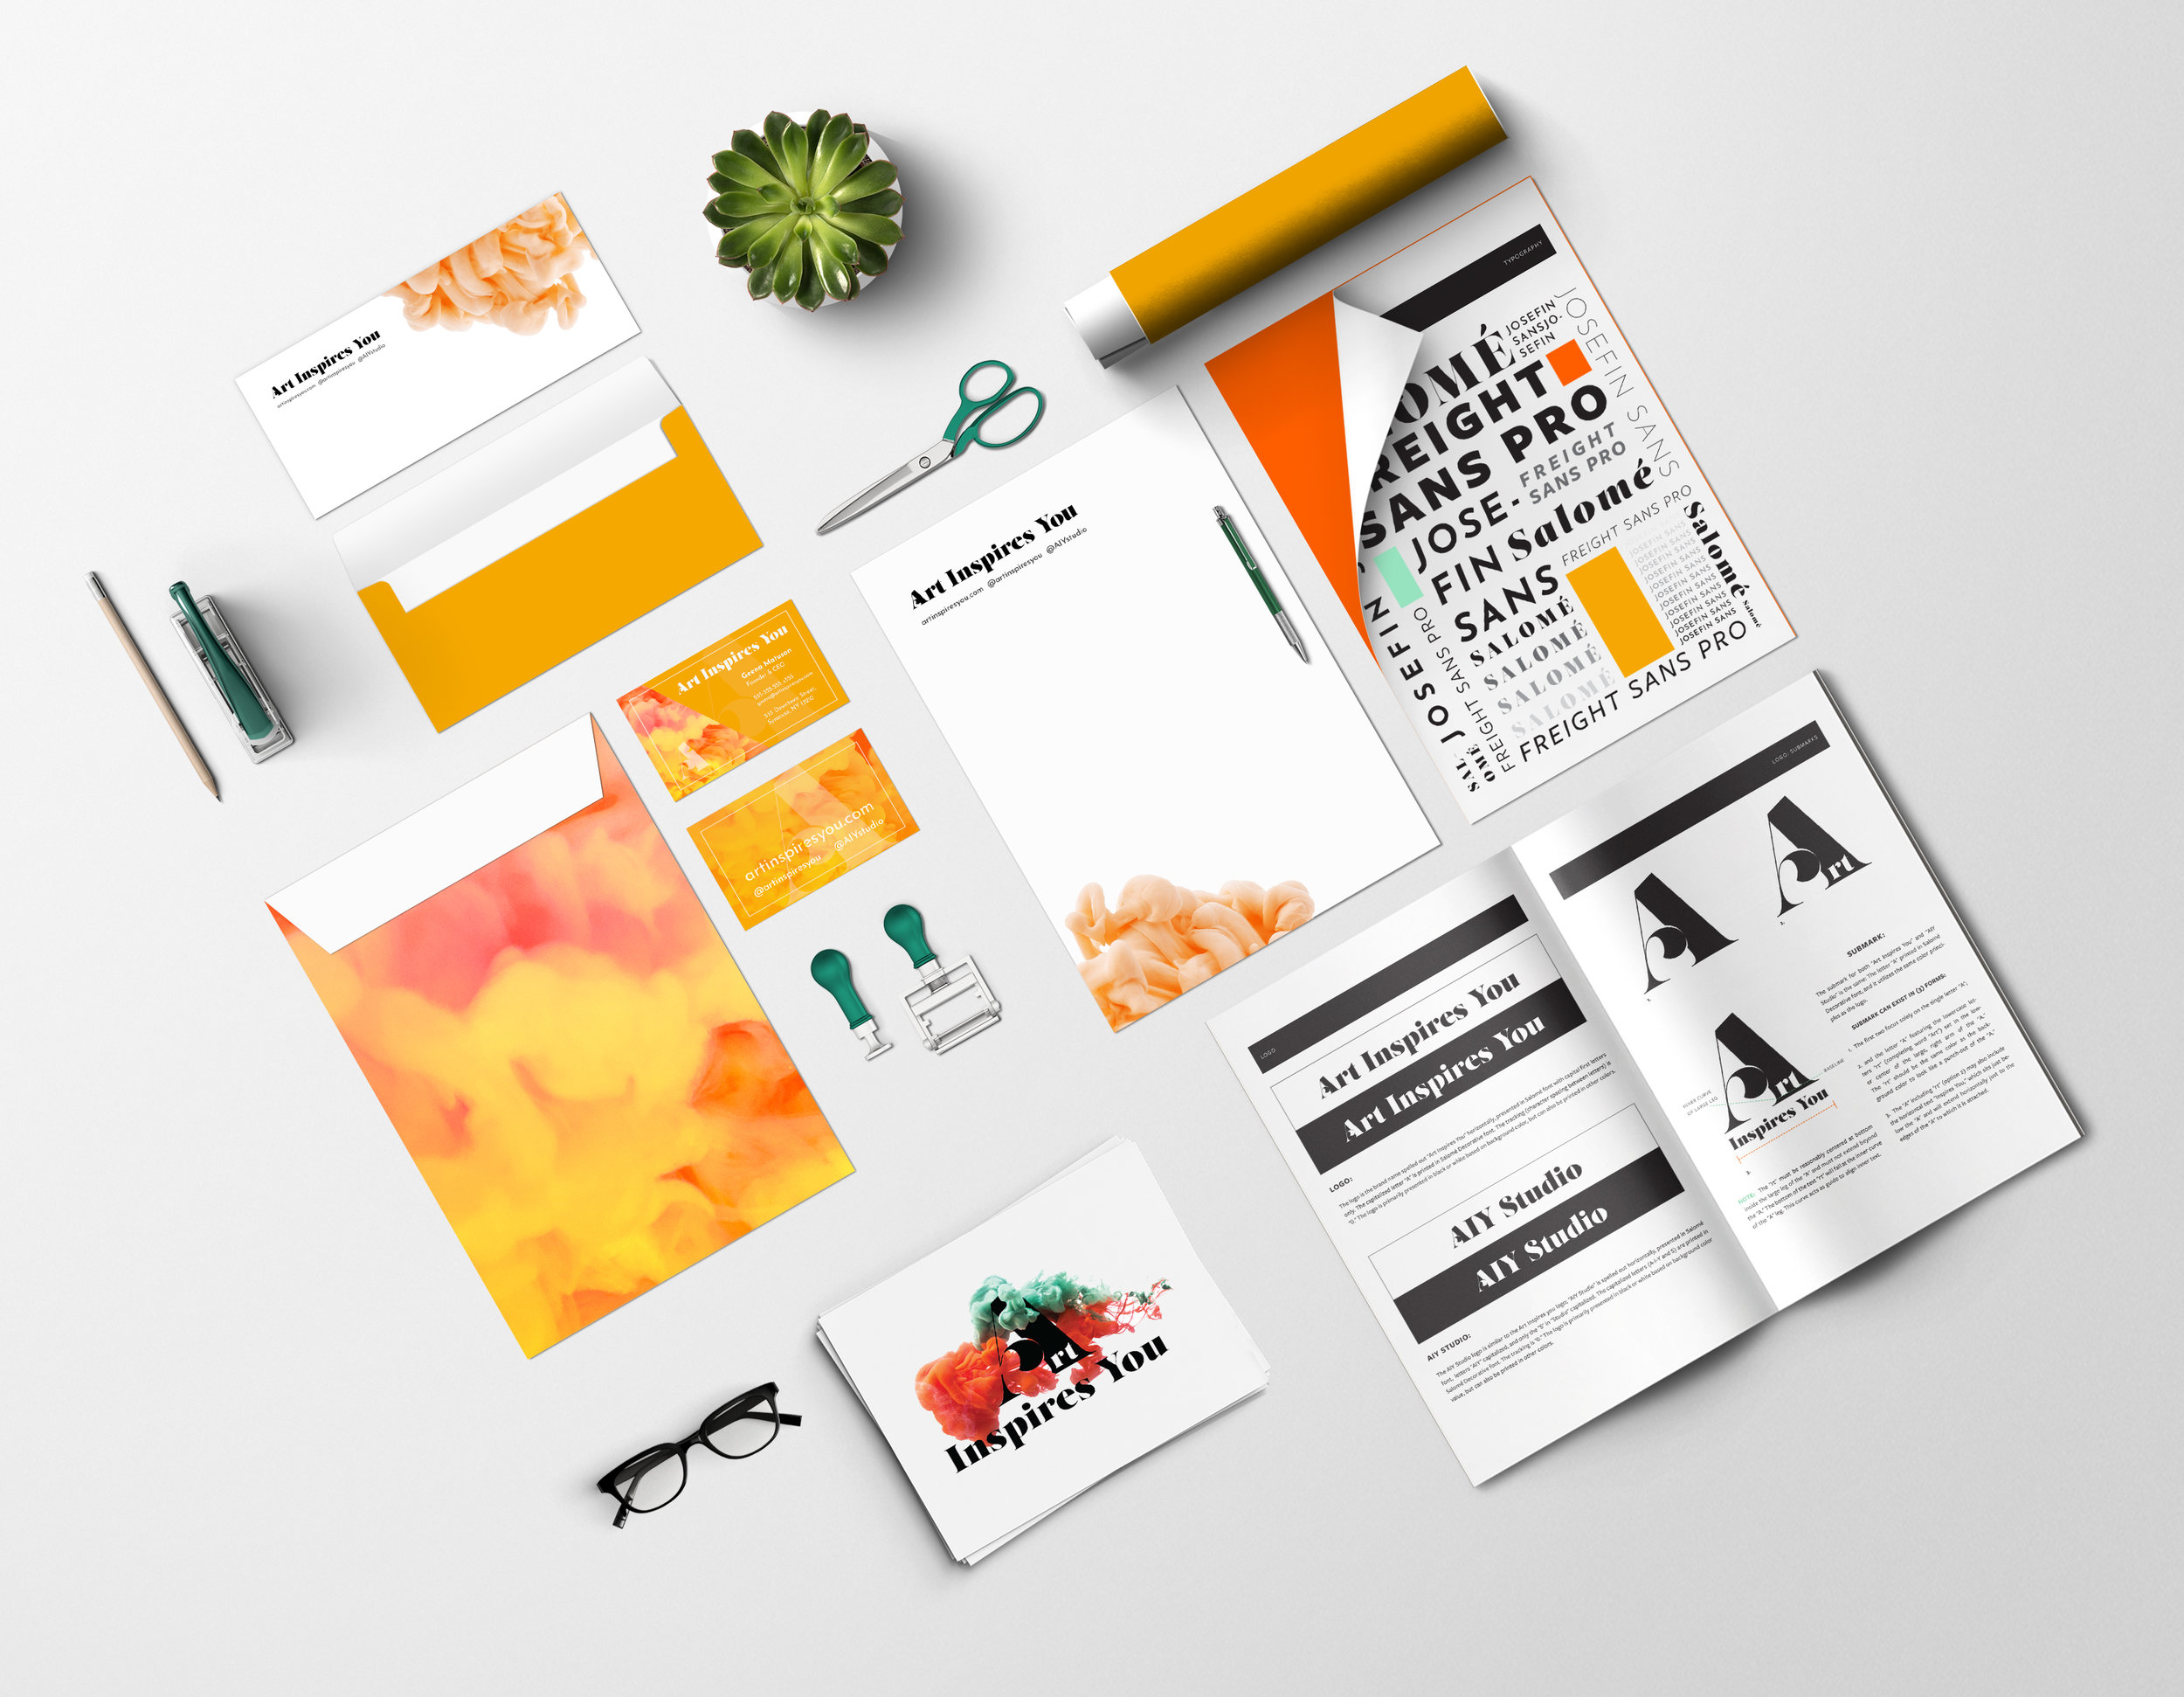 AIY Studio (Art Inspires You) branding and identity by Geena Matuson (@geenamatuson).